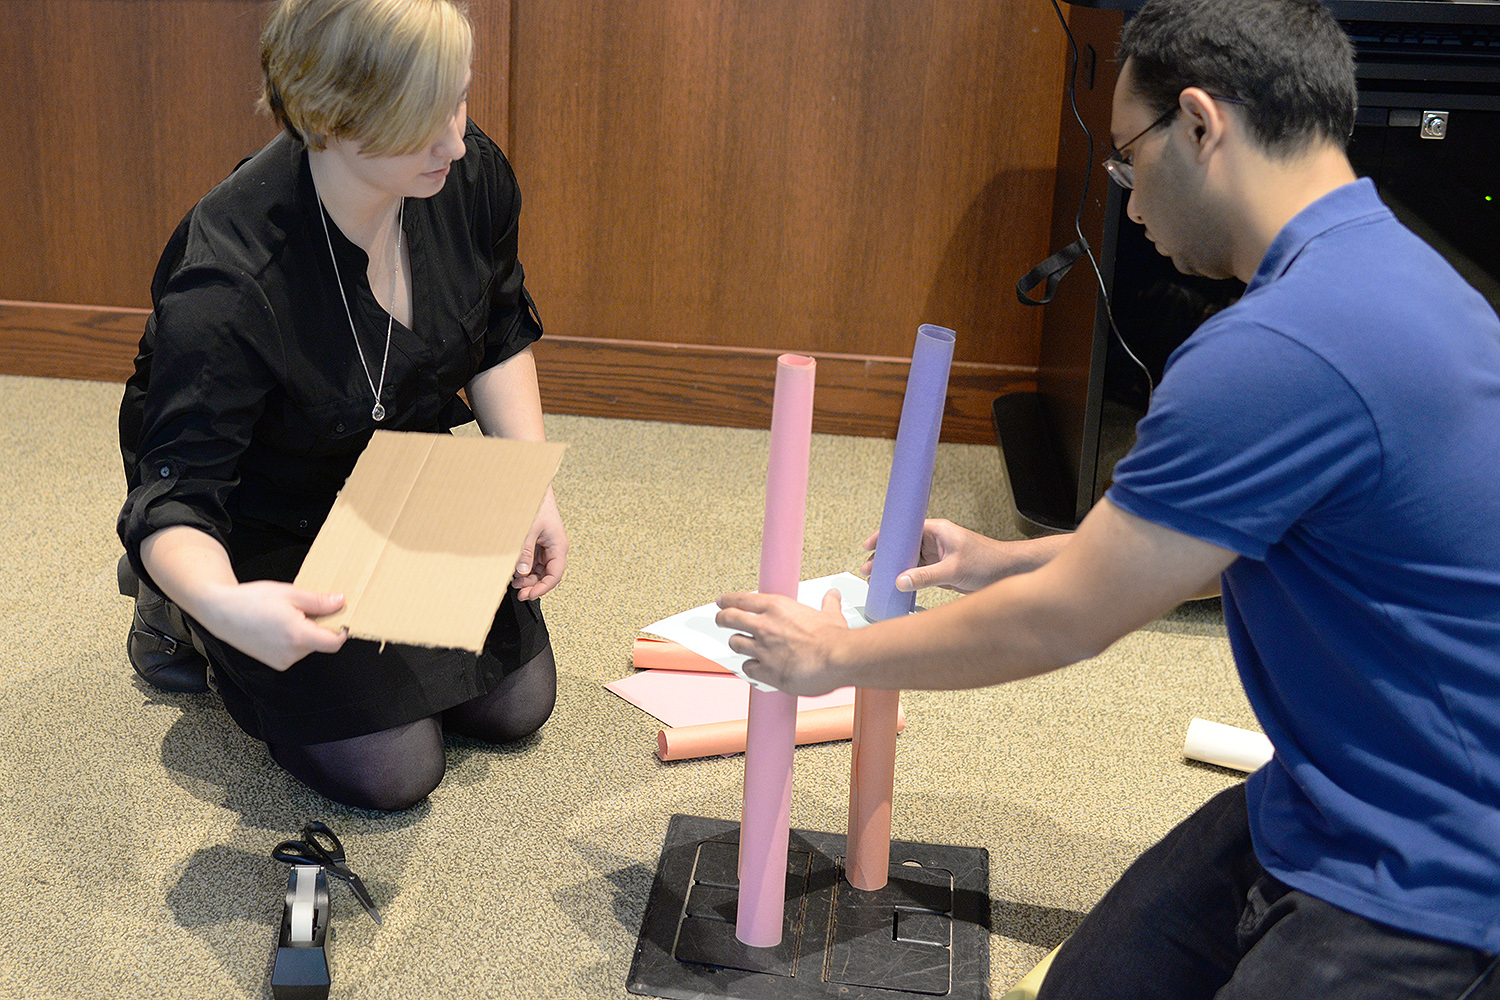 While working in groups of three and four, the teams each had five minutes to plan how they'd construct a 5-foot-tall, free standing structure using only paper, two sheets of cardboard, tape and scissors.